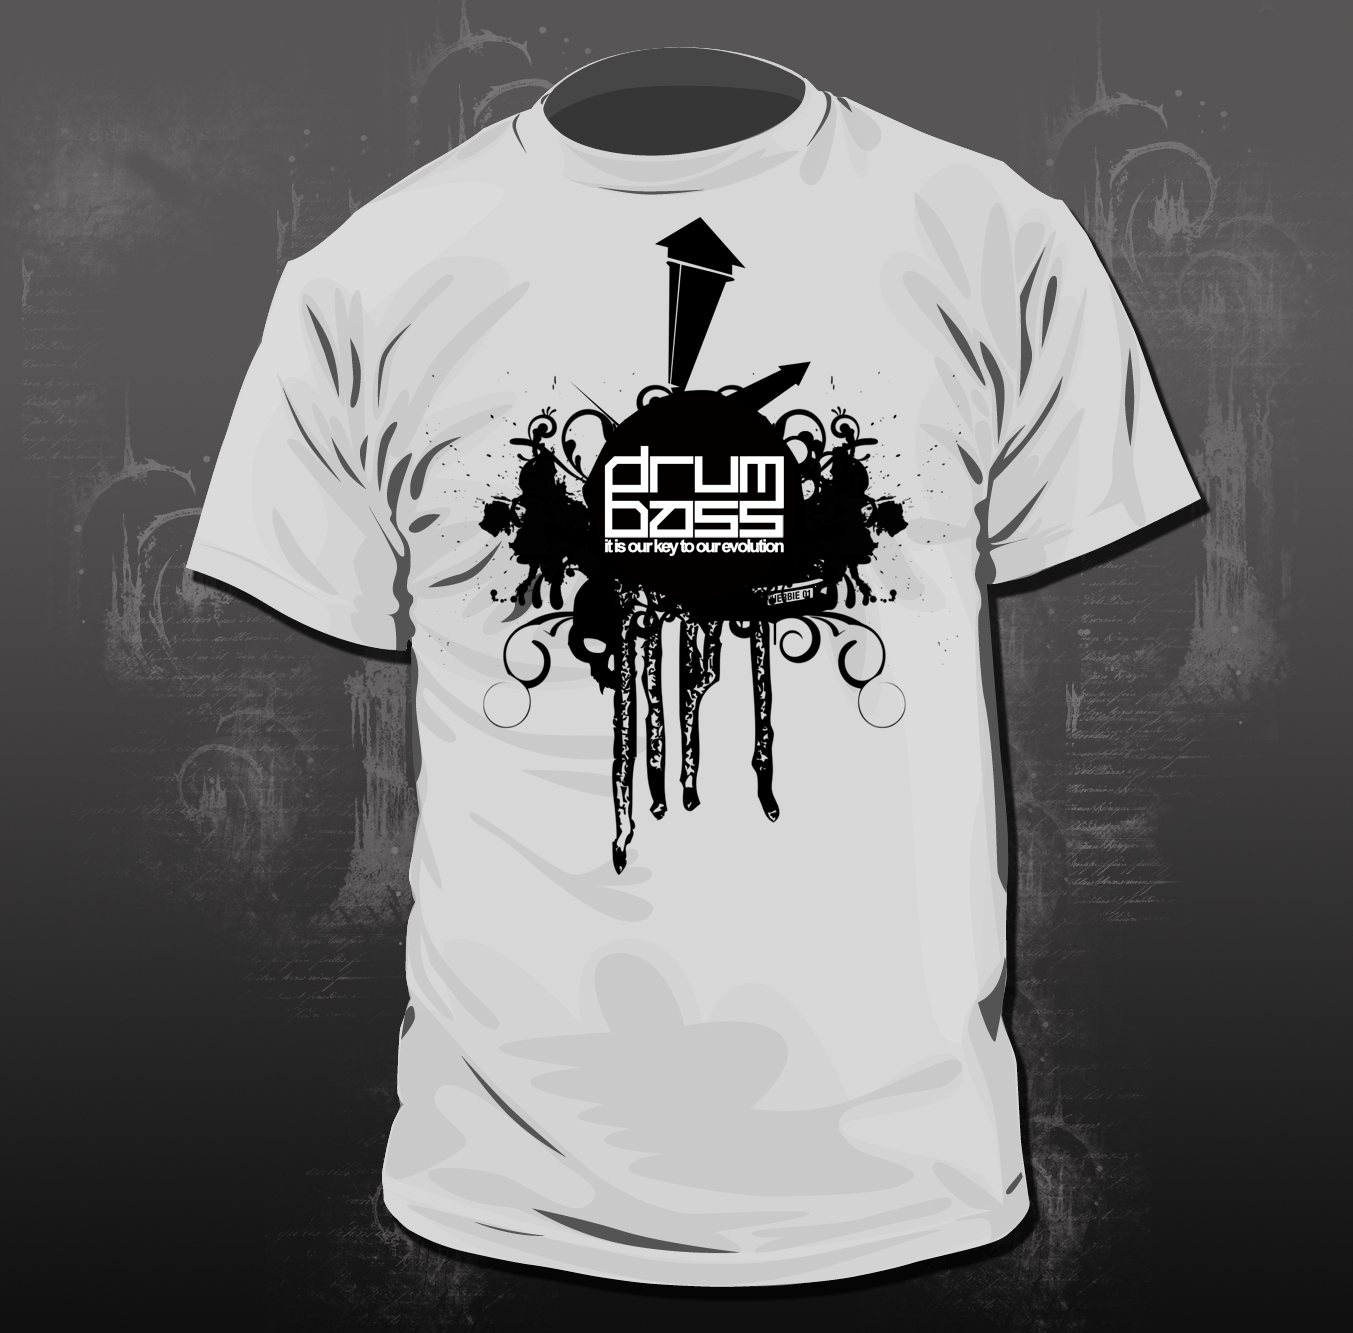 9e548d64 t-shirt-printing-design.html in hitizexyt.github.com | source code search  engine